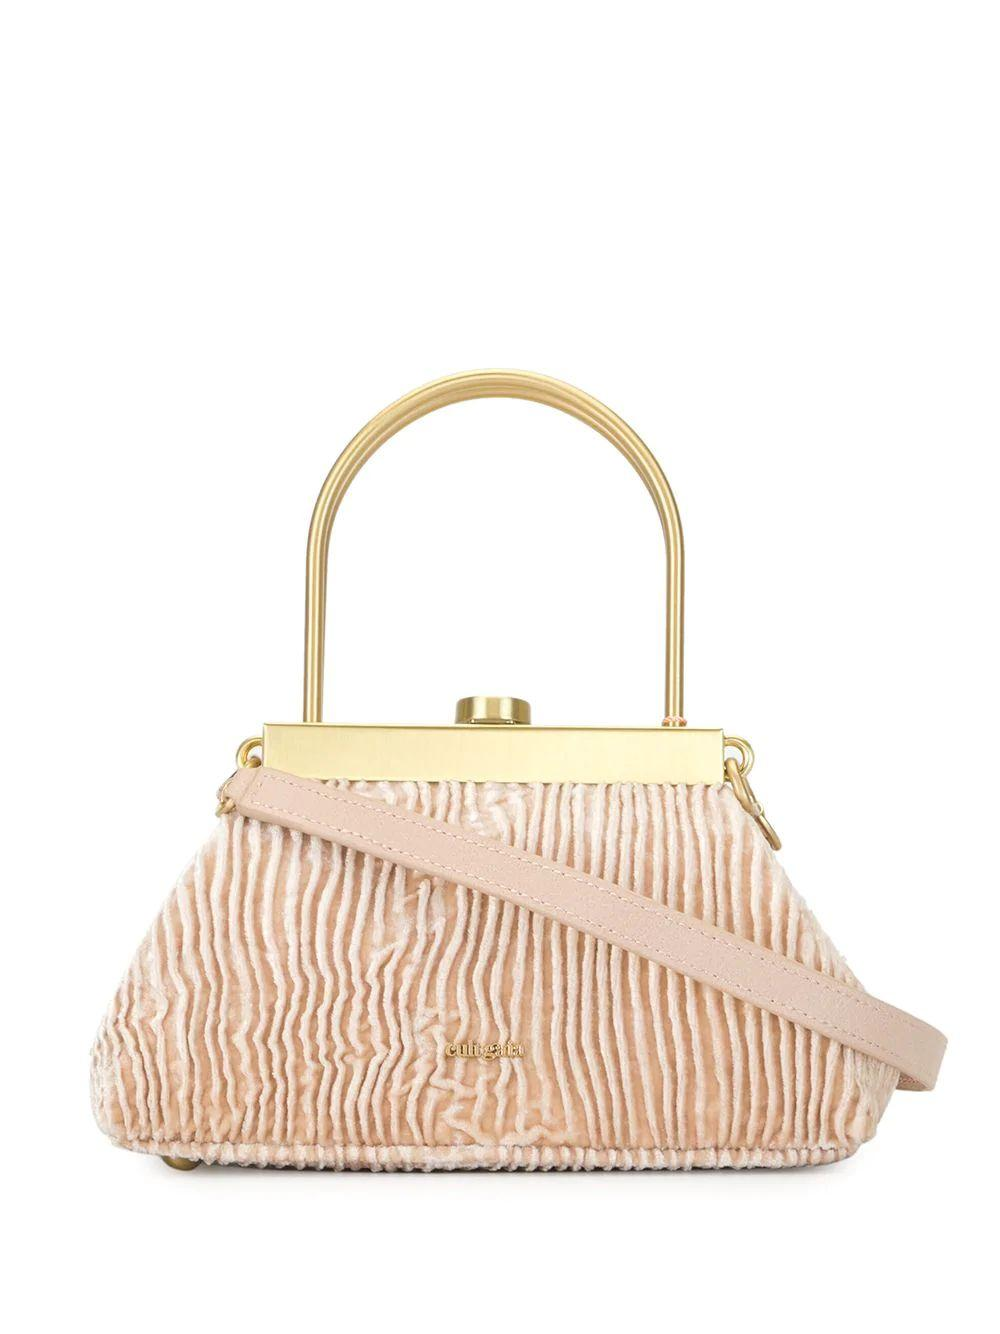 Estelle Mini Bag Crossbody